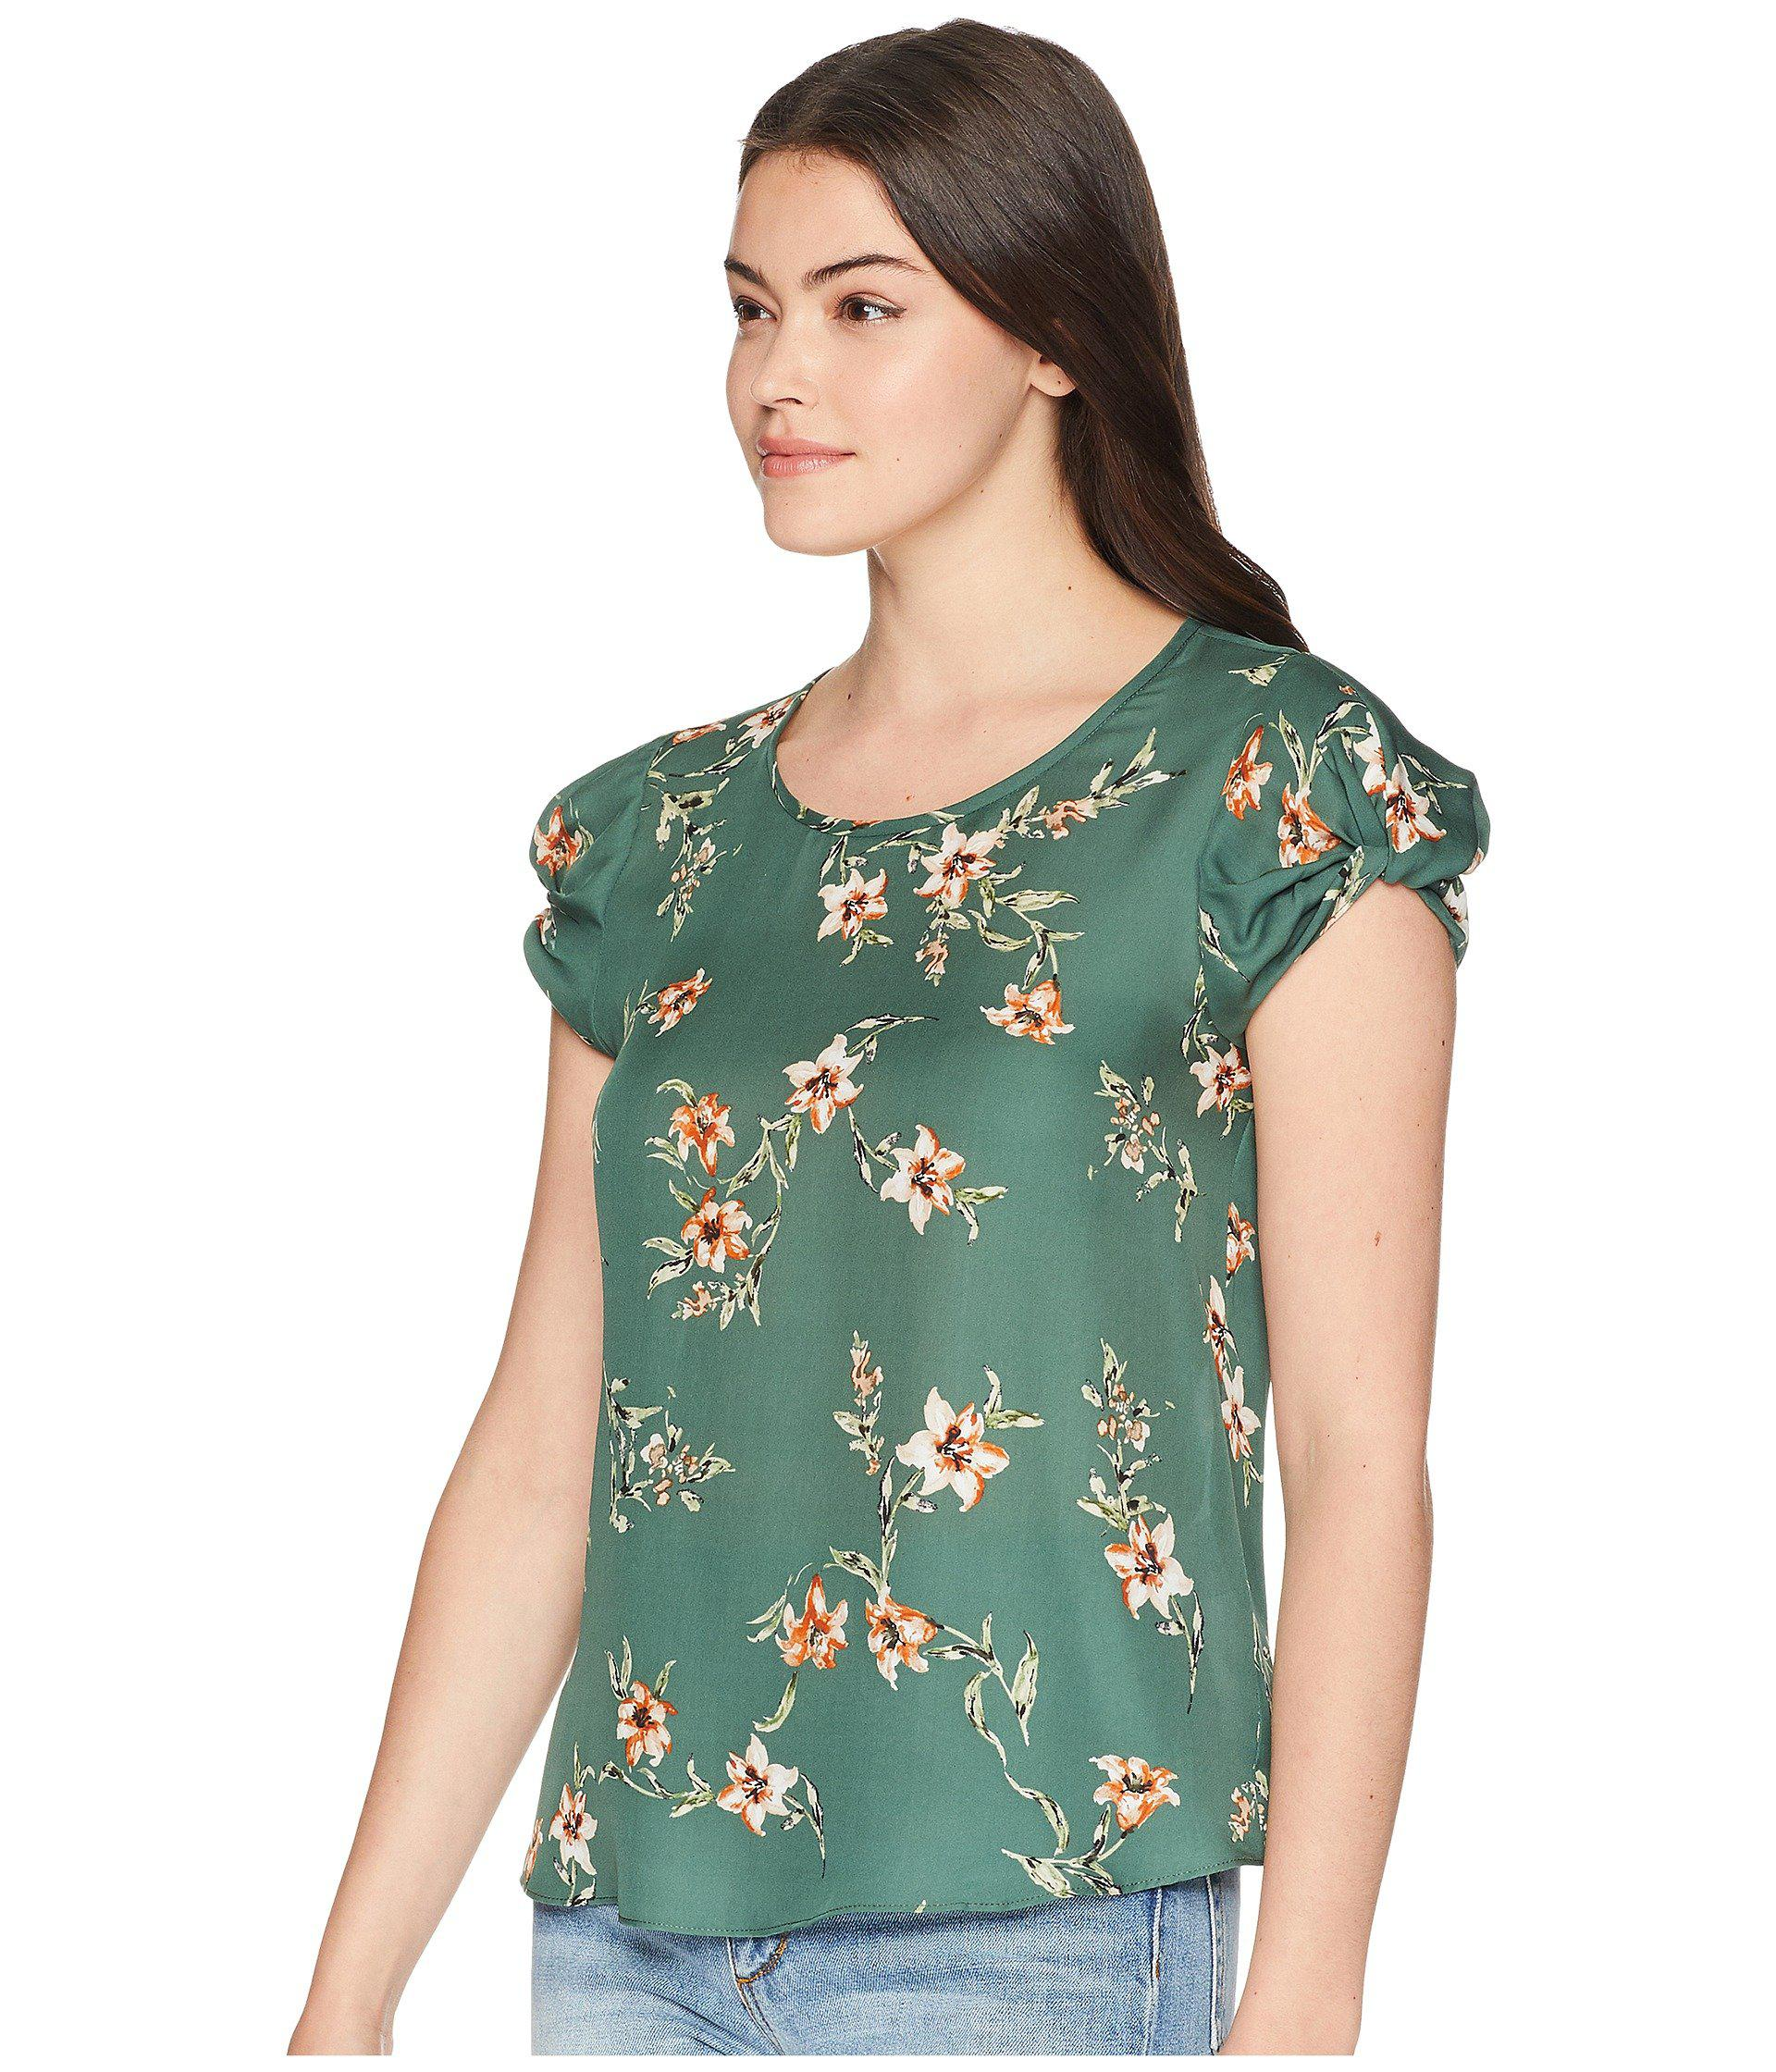 2ea7f0c533d43 Joie - Woman Knotted Floral-print Silk Crepe De Chine Top Forest Green -  Lyst. View fullscreen